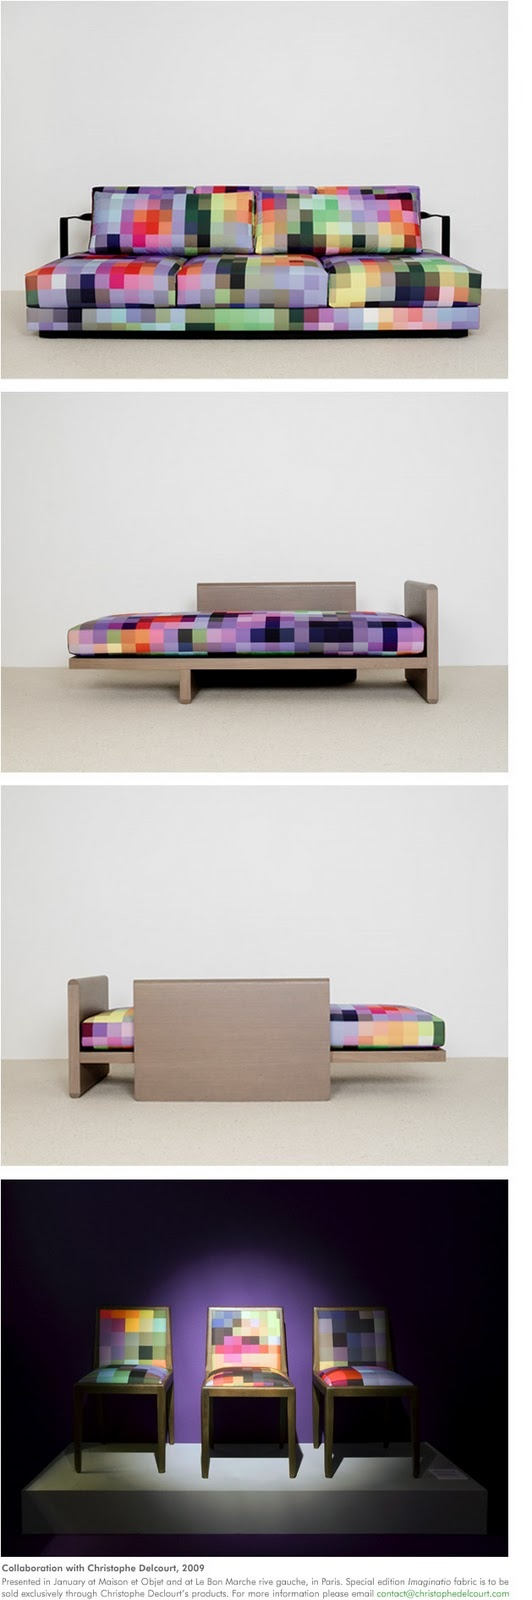 Wish | 8 Bit Furniture Set: Couch, Bed, 3 Chairs - Video Game Decor